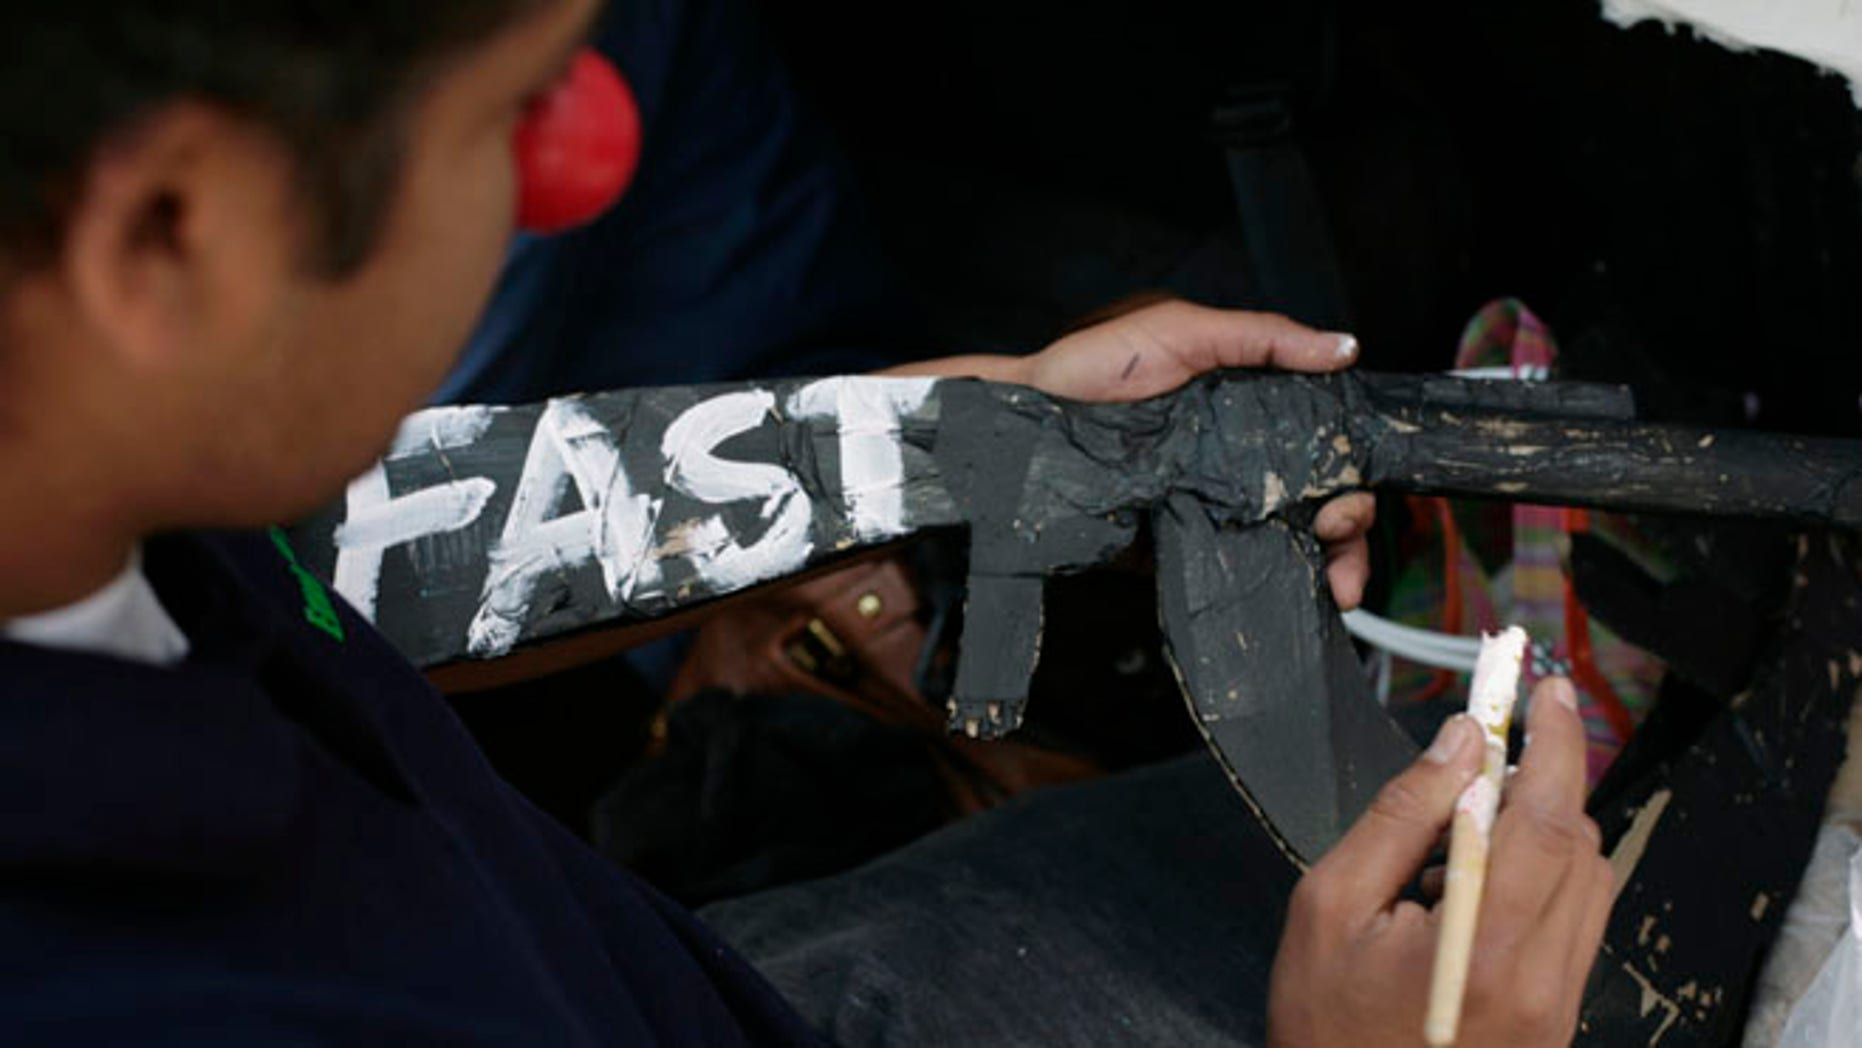 """FILE: October 14, 2011: A man writes """"Fast"""" -- in reference to Operation Fast and Furious -- on a paper mache gun during a protest in Mexico City ."""